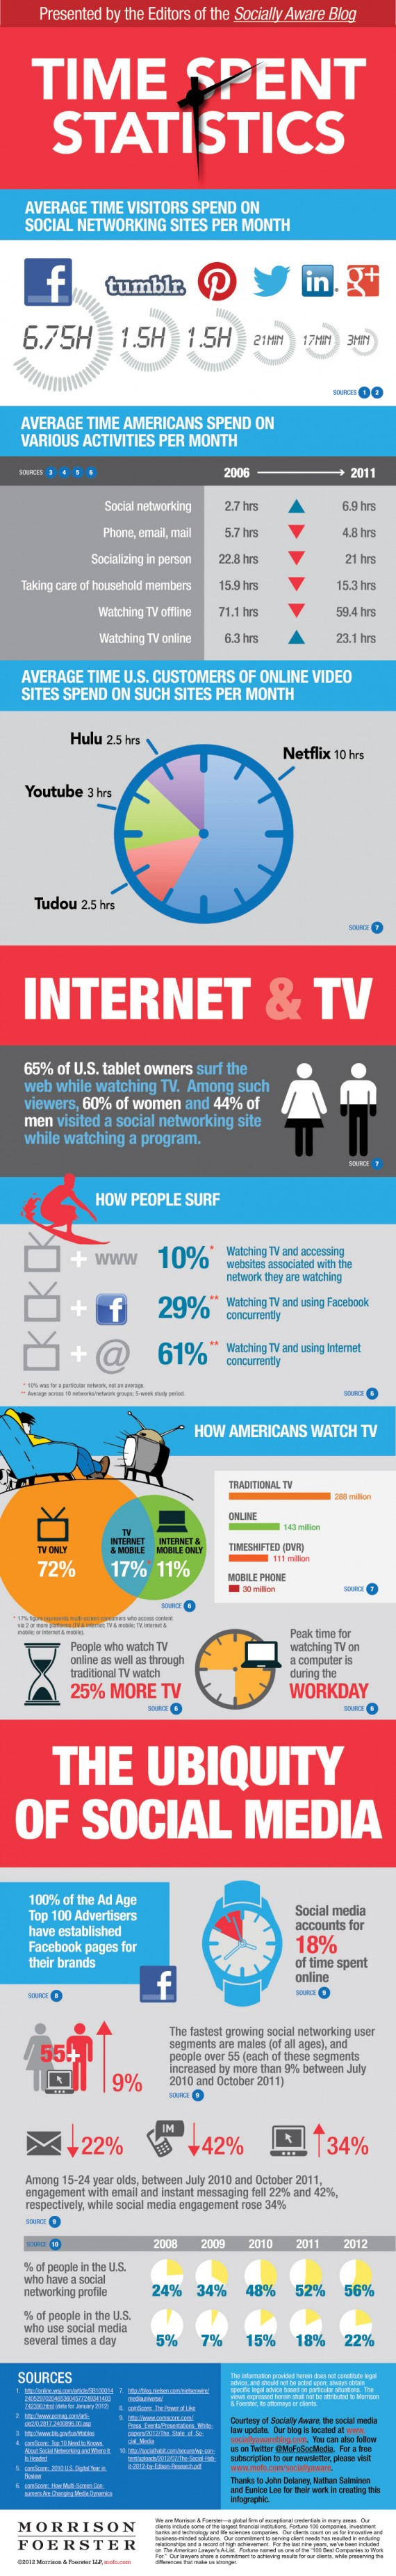 How much time do you spend using social media? [Infographic] - The ...